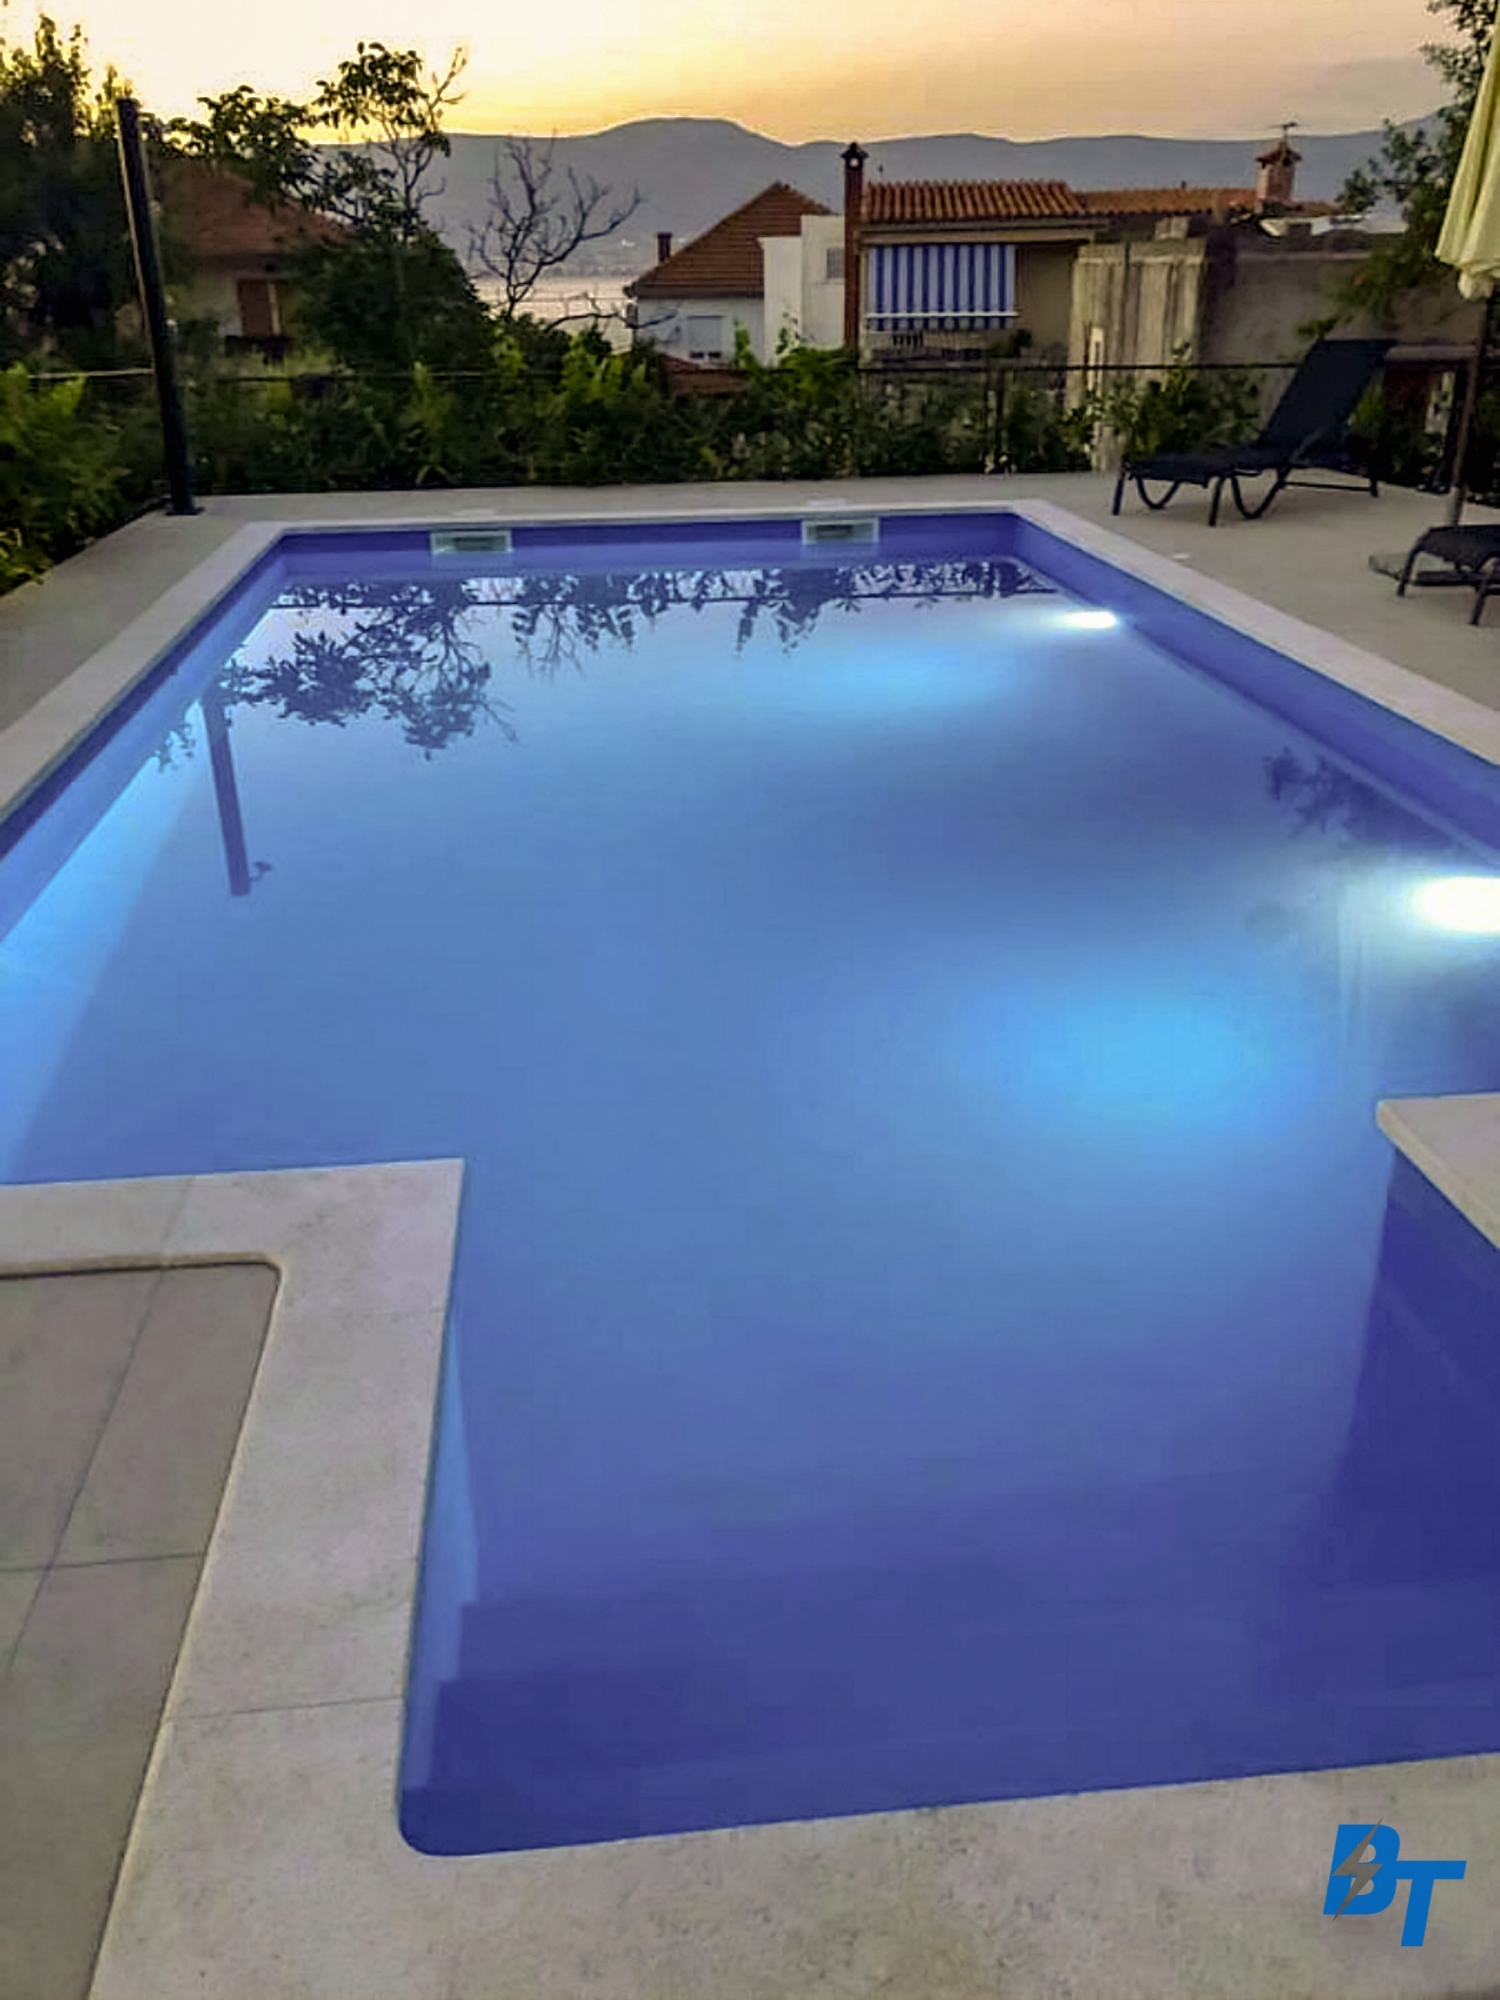 Enjoy Swimming in the Pool in the Evening